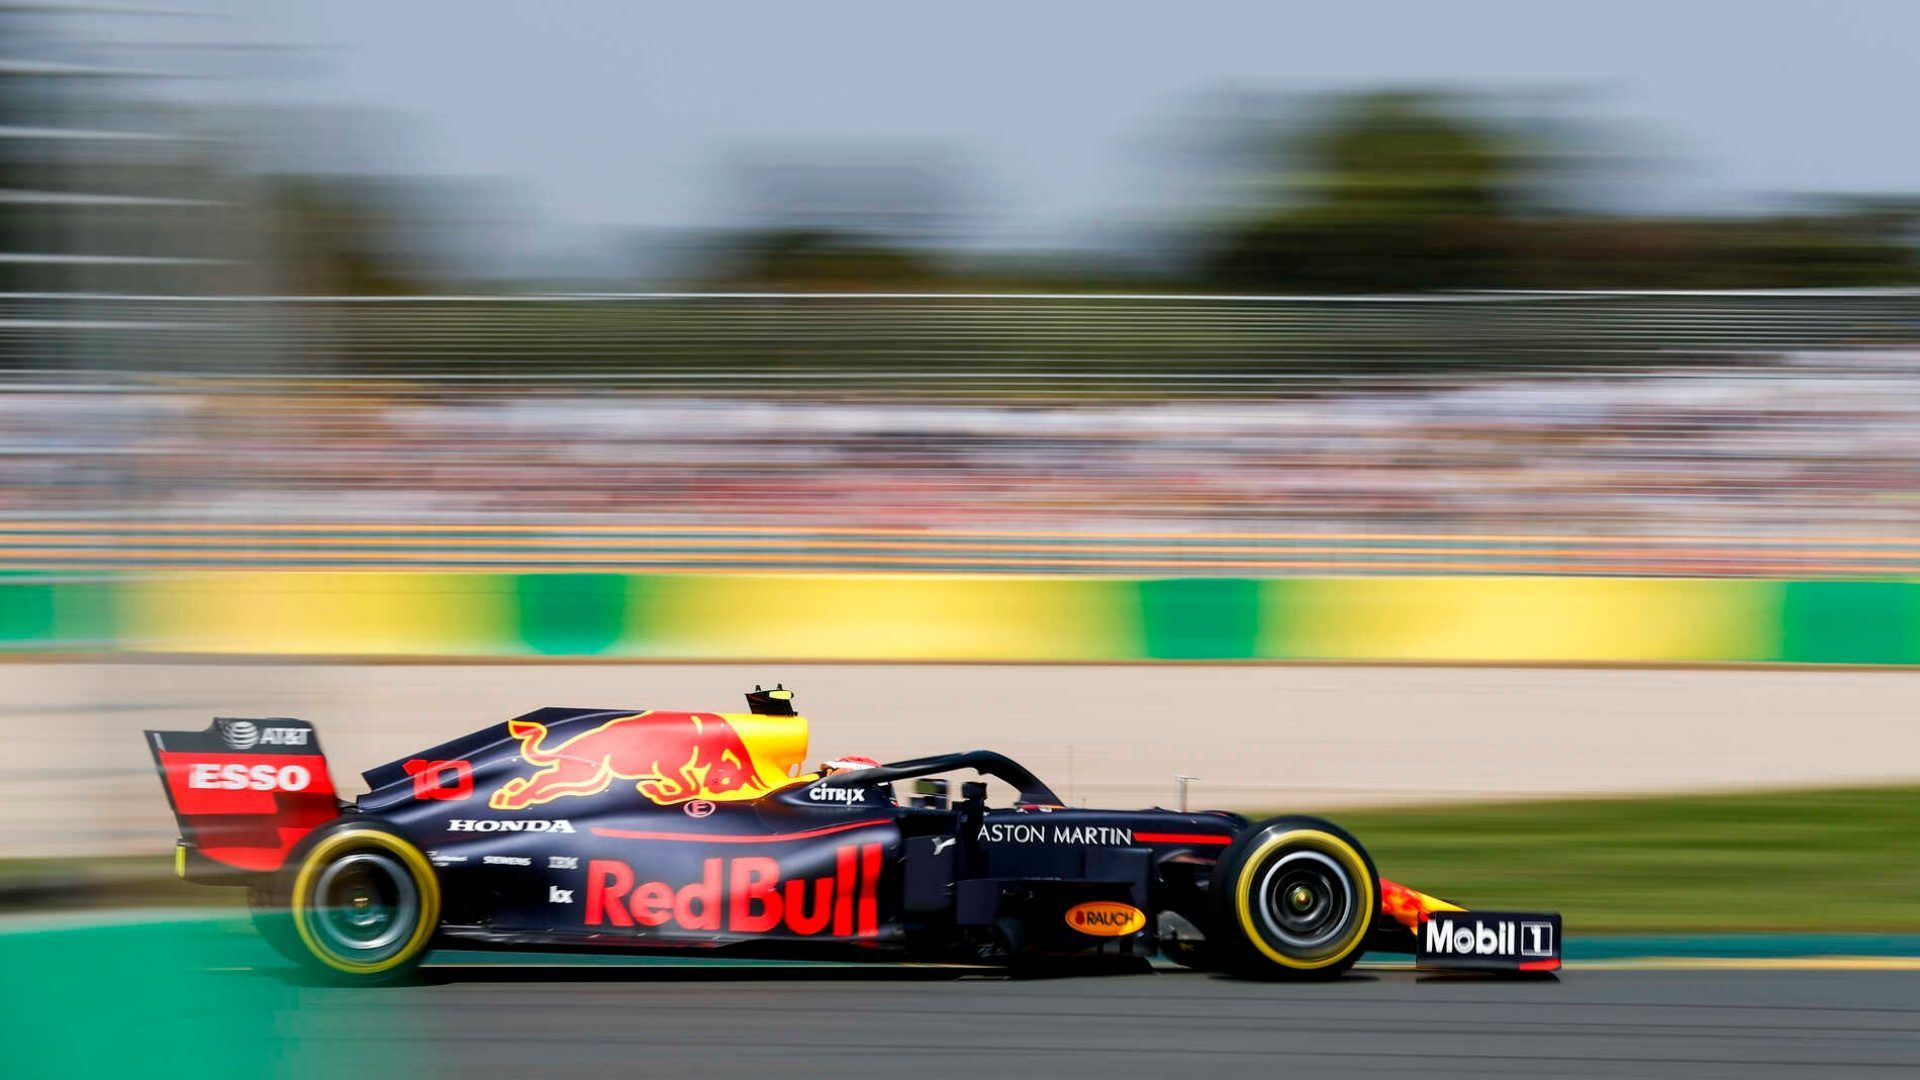 Pierre Gasly, Red Bull Racing RB15 during the Australian